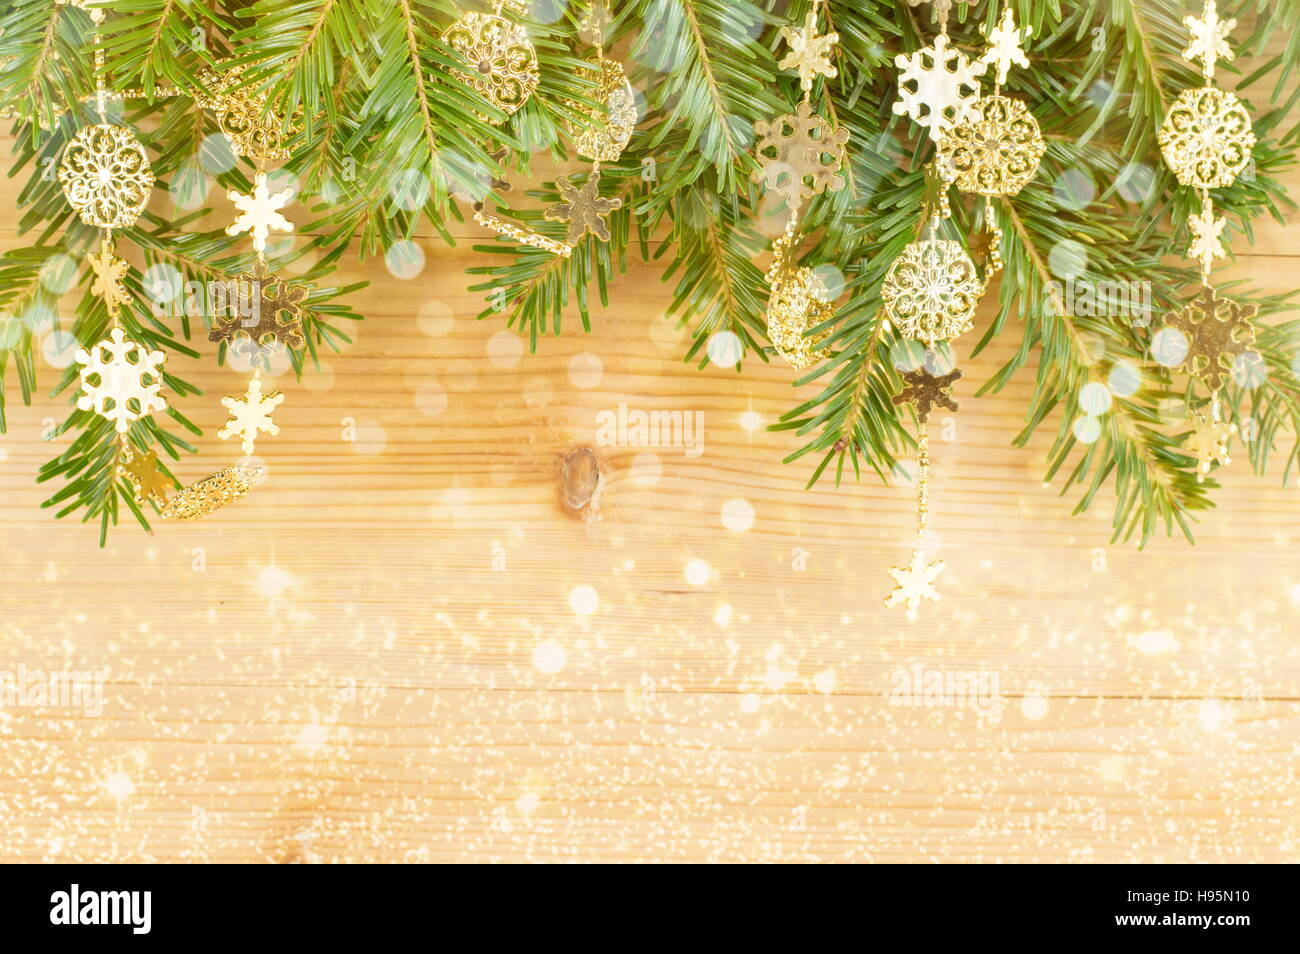 Celeb Christmas Card Stock Photos & Celeb Christmas Card Stock ...